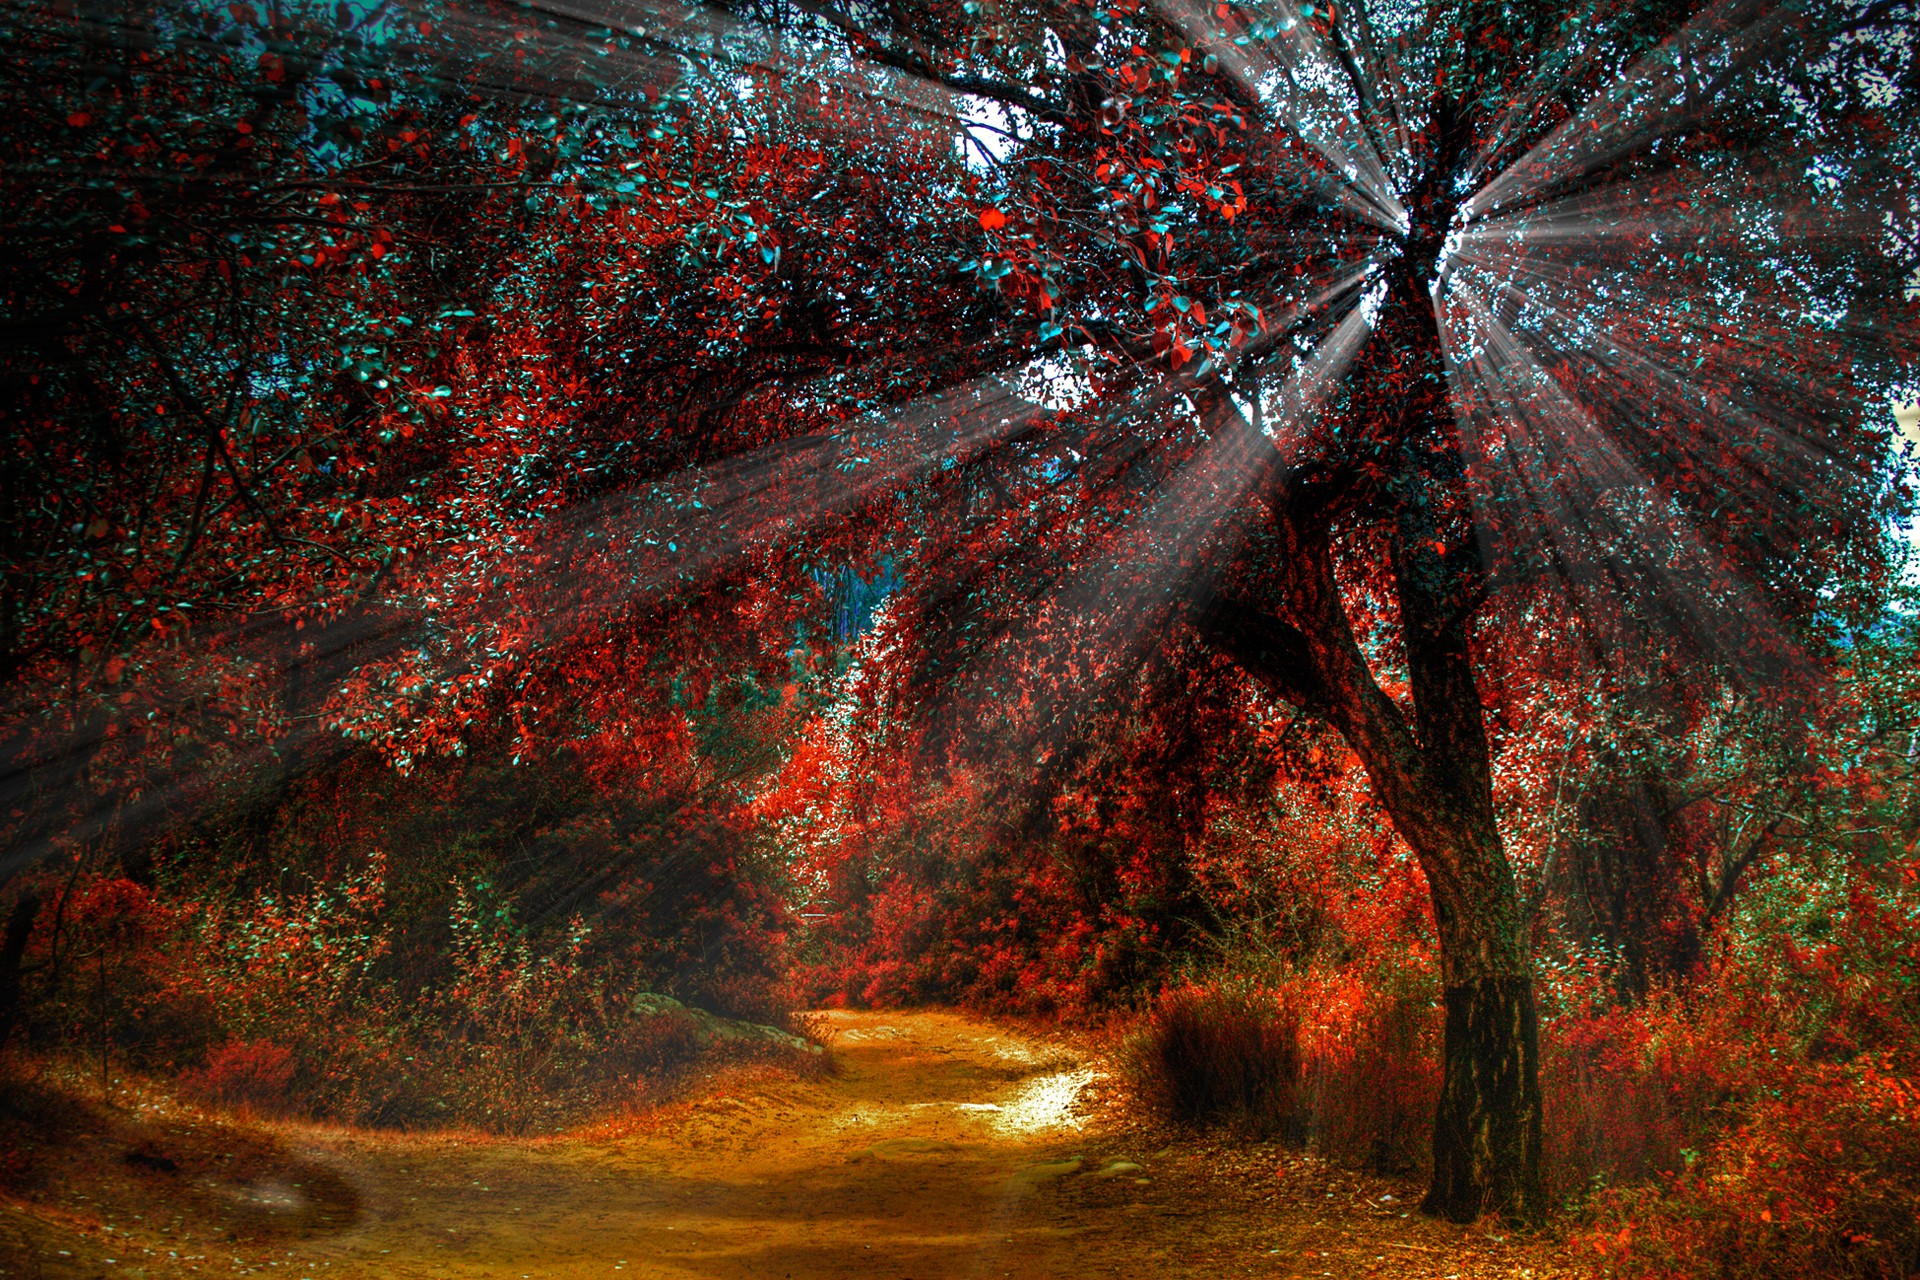 Forests: Autumn Red Fall Colorful Spotlight Beauty Natures Woods ...